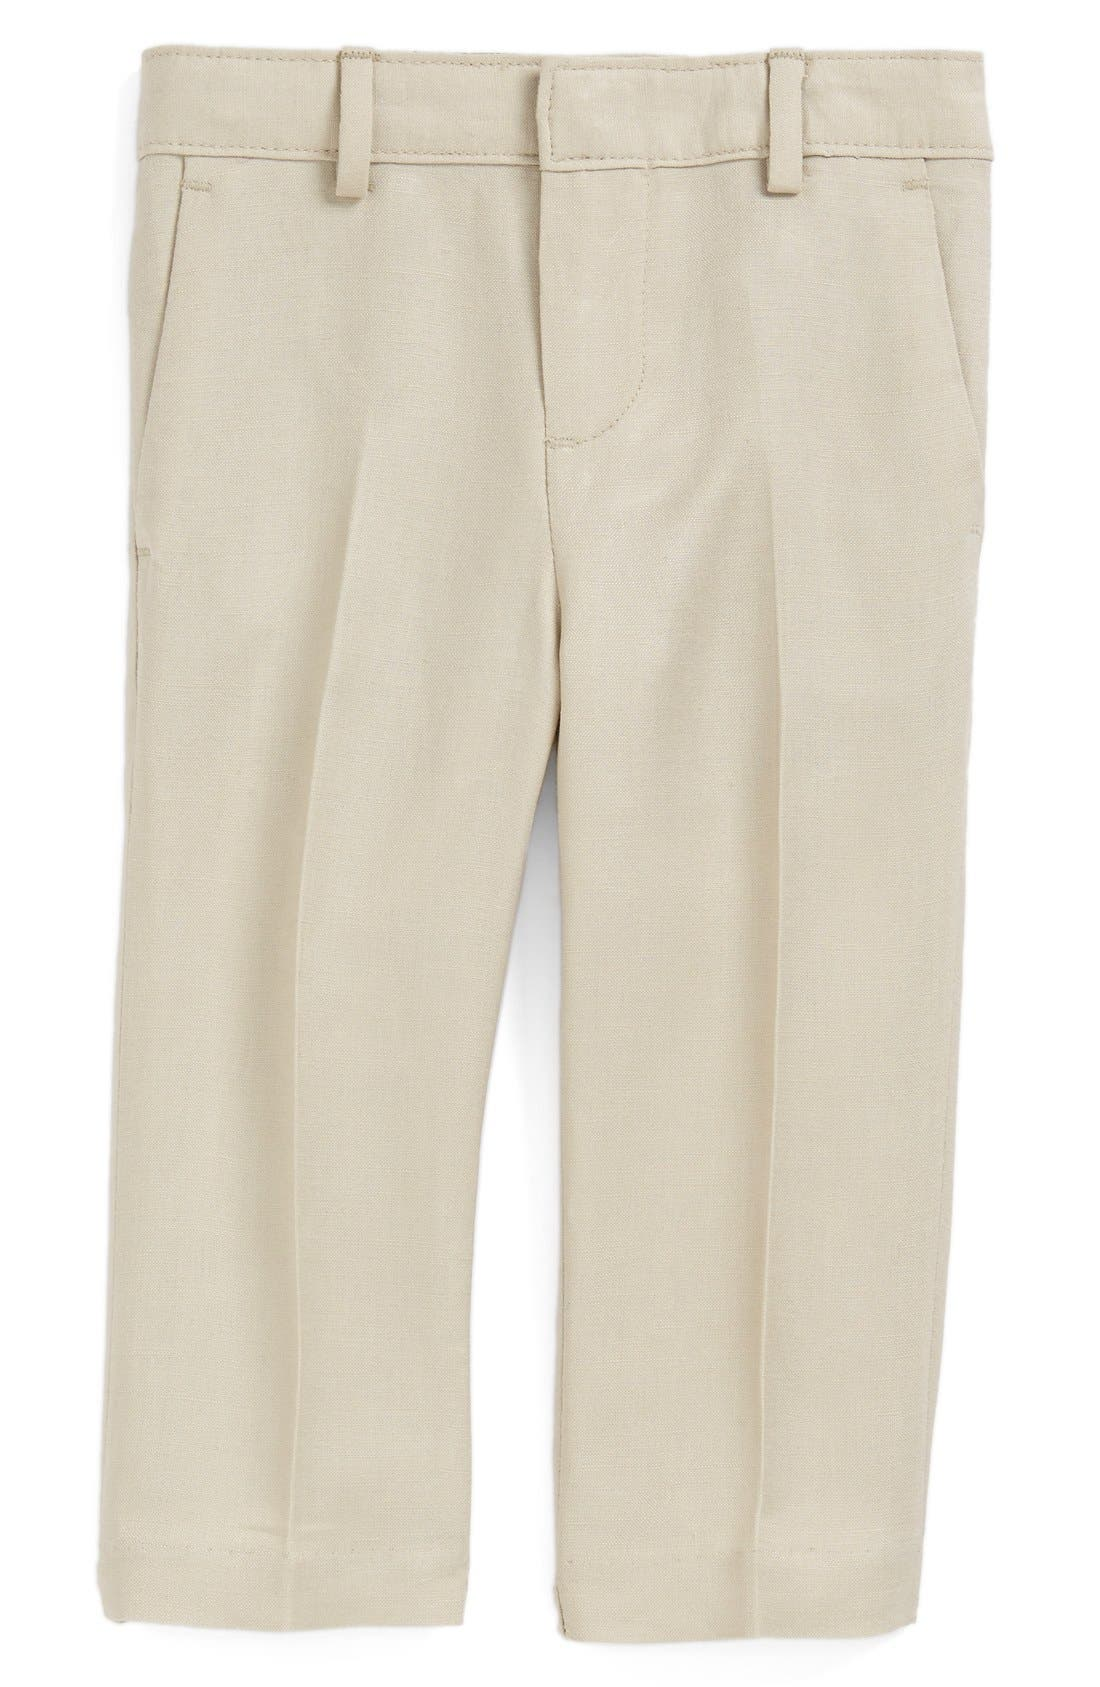 Alternate Image 1 Selected - Nordstrom 'Quentin' Linen Blend Trousers (Baby Boys)